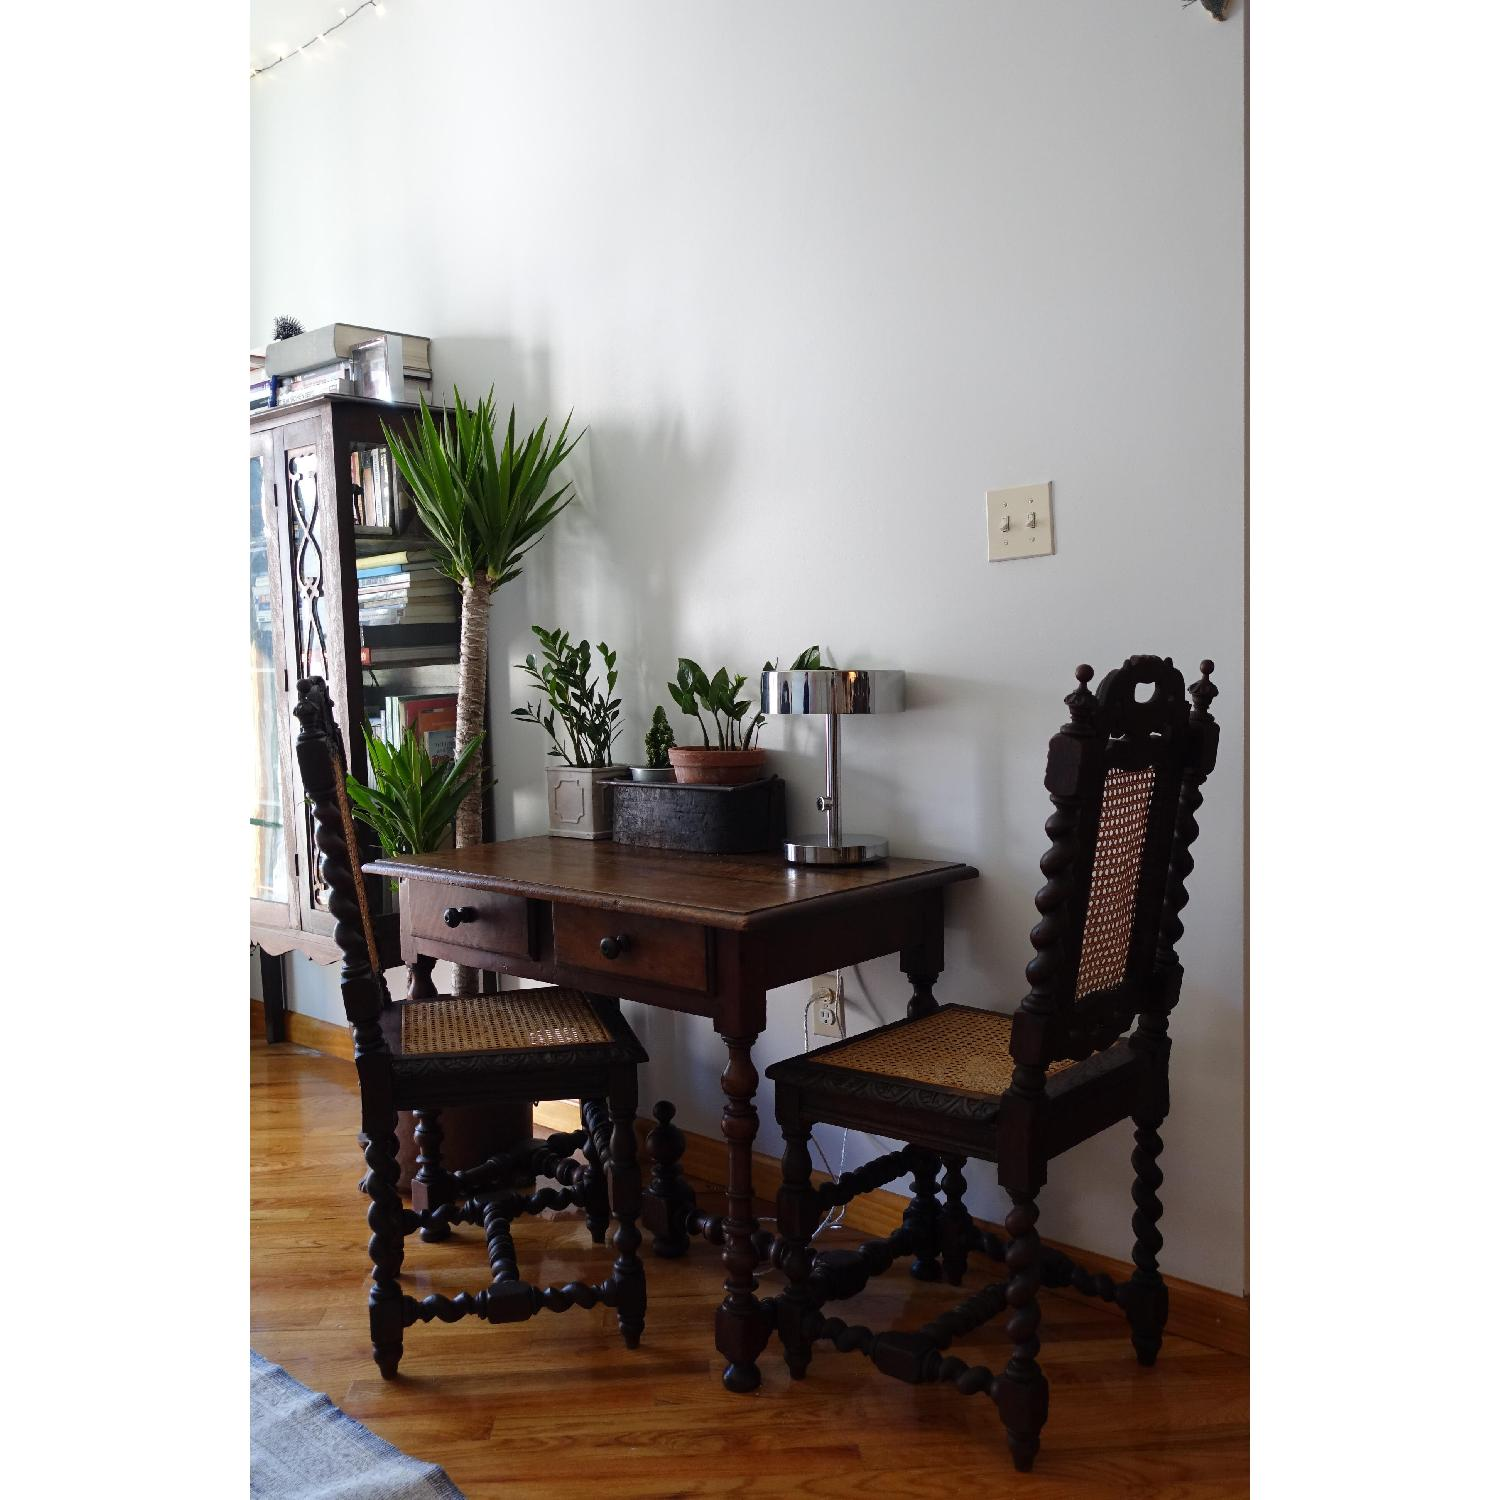 Antique French Colonial 19th Century Chair - image-4